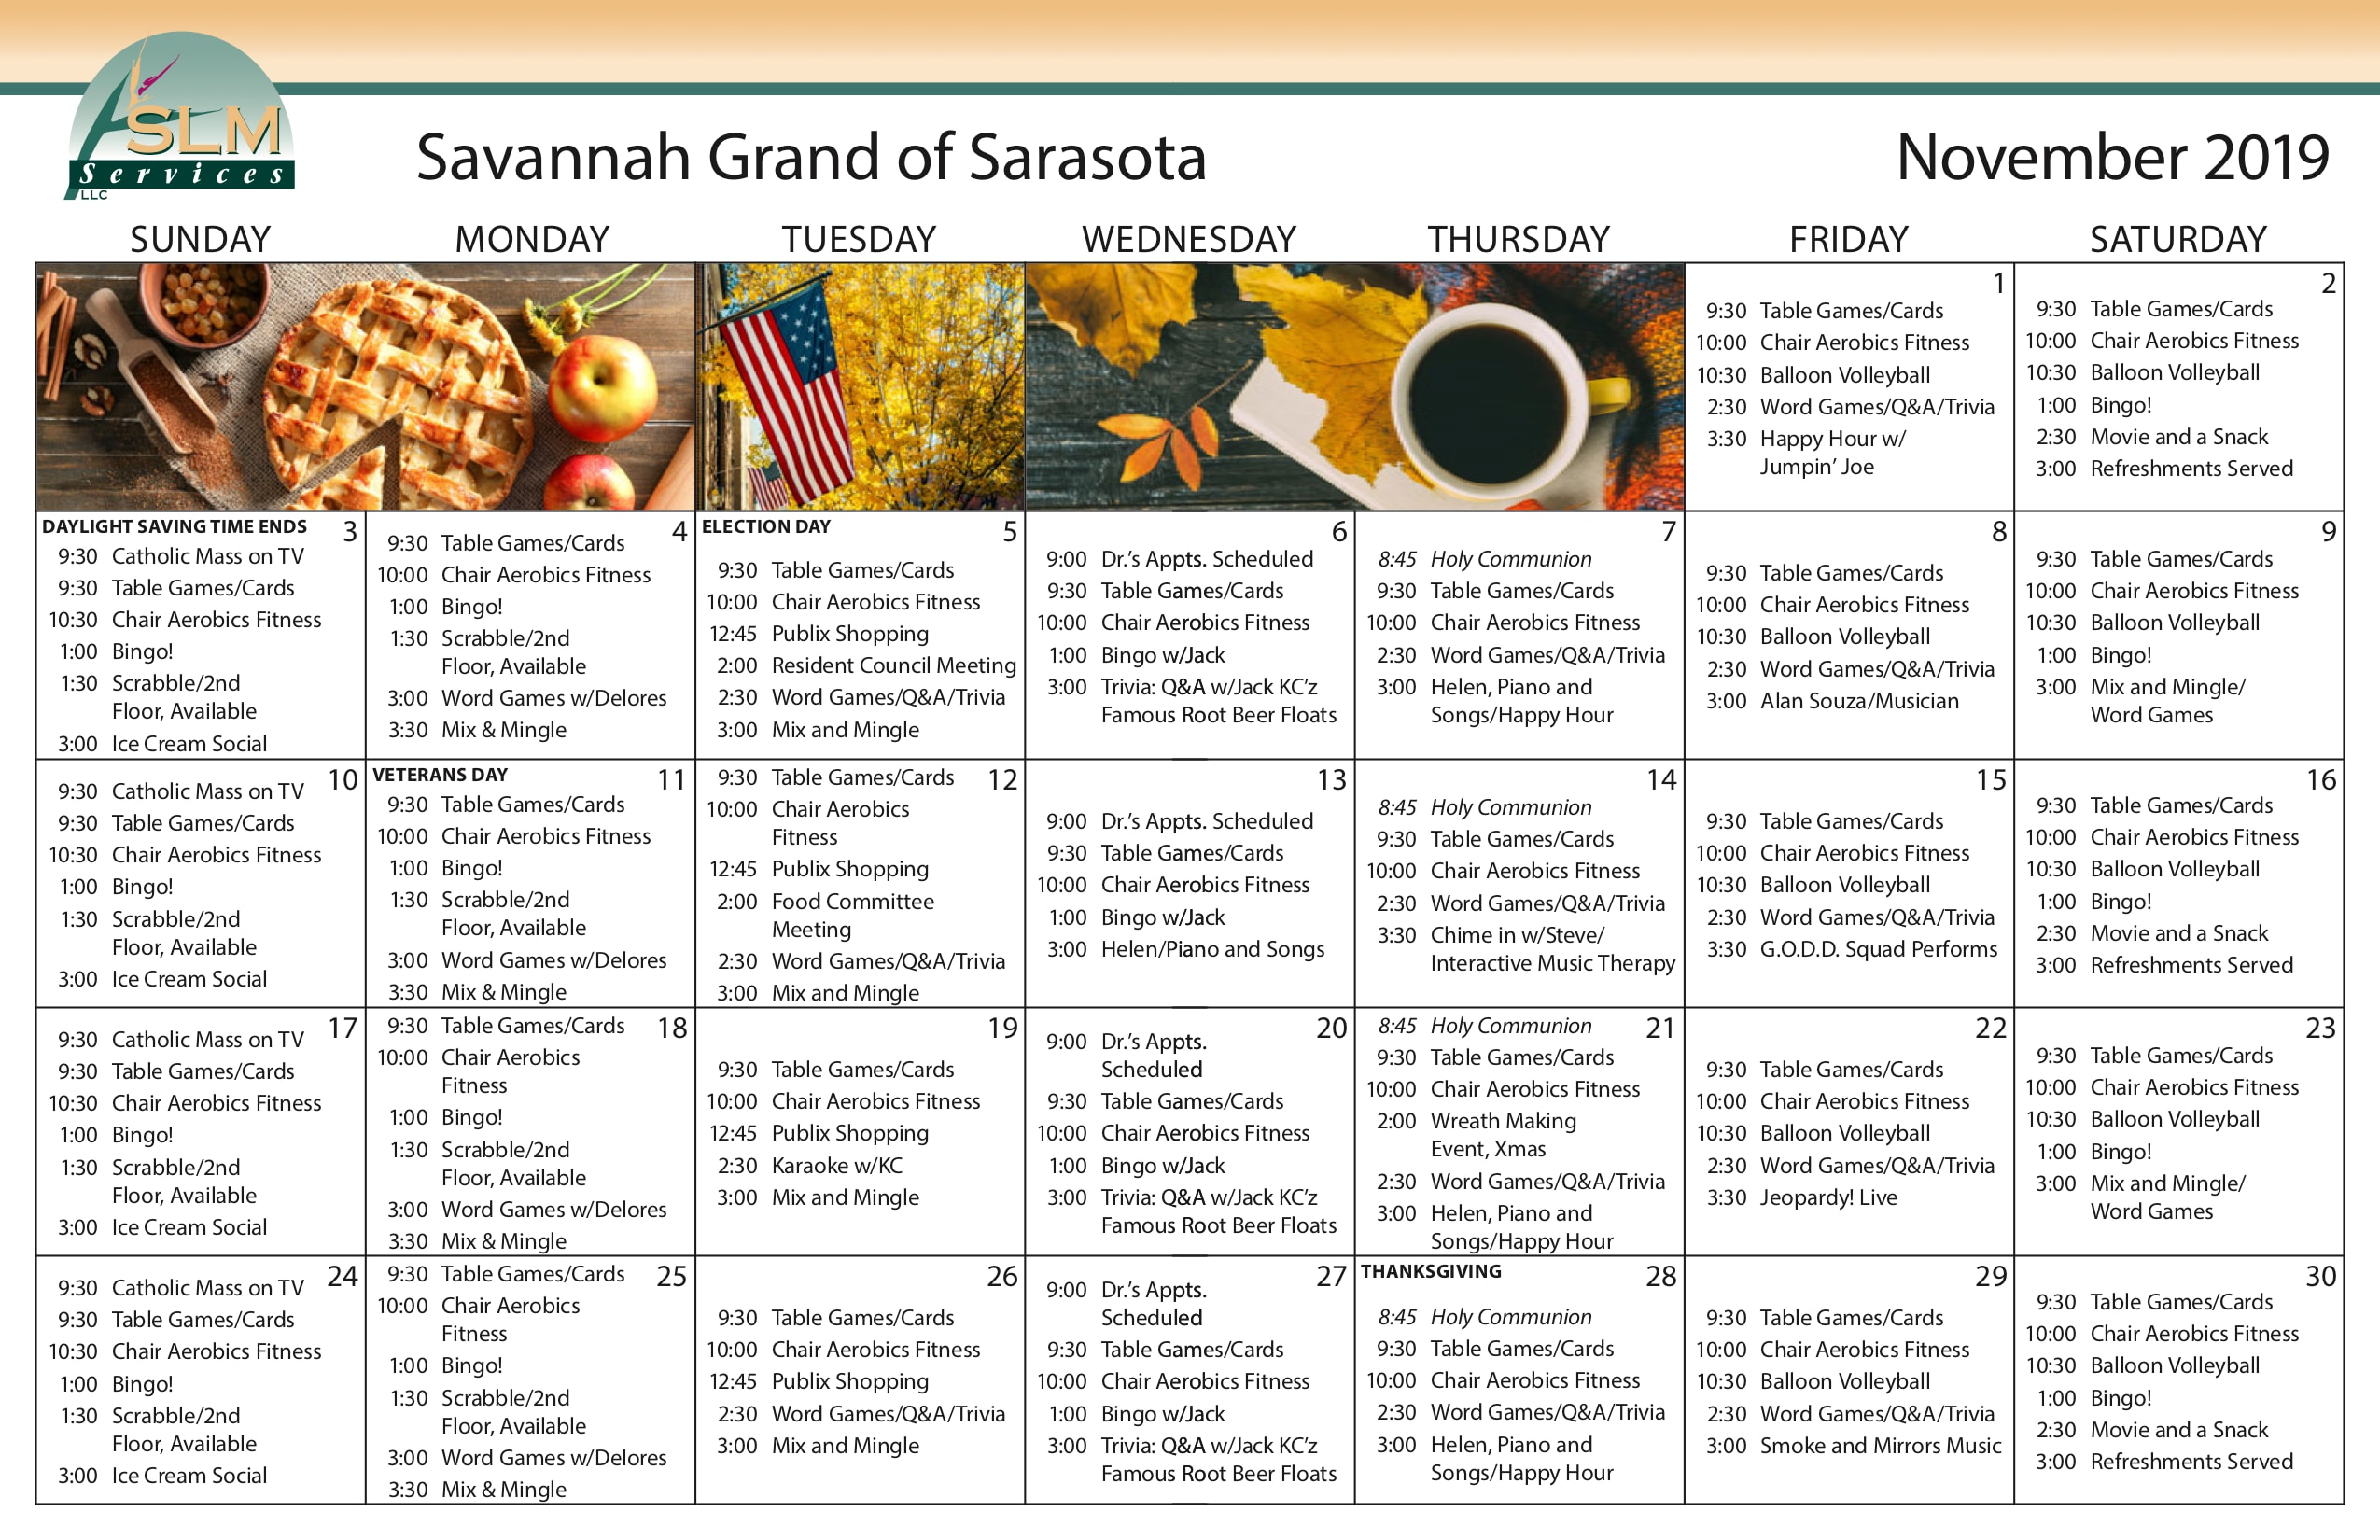 View our monthly calendar of events at Savannah Grand of Sarasota